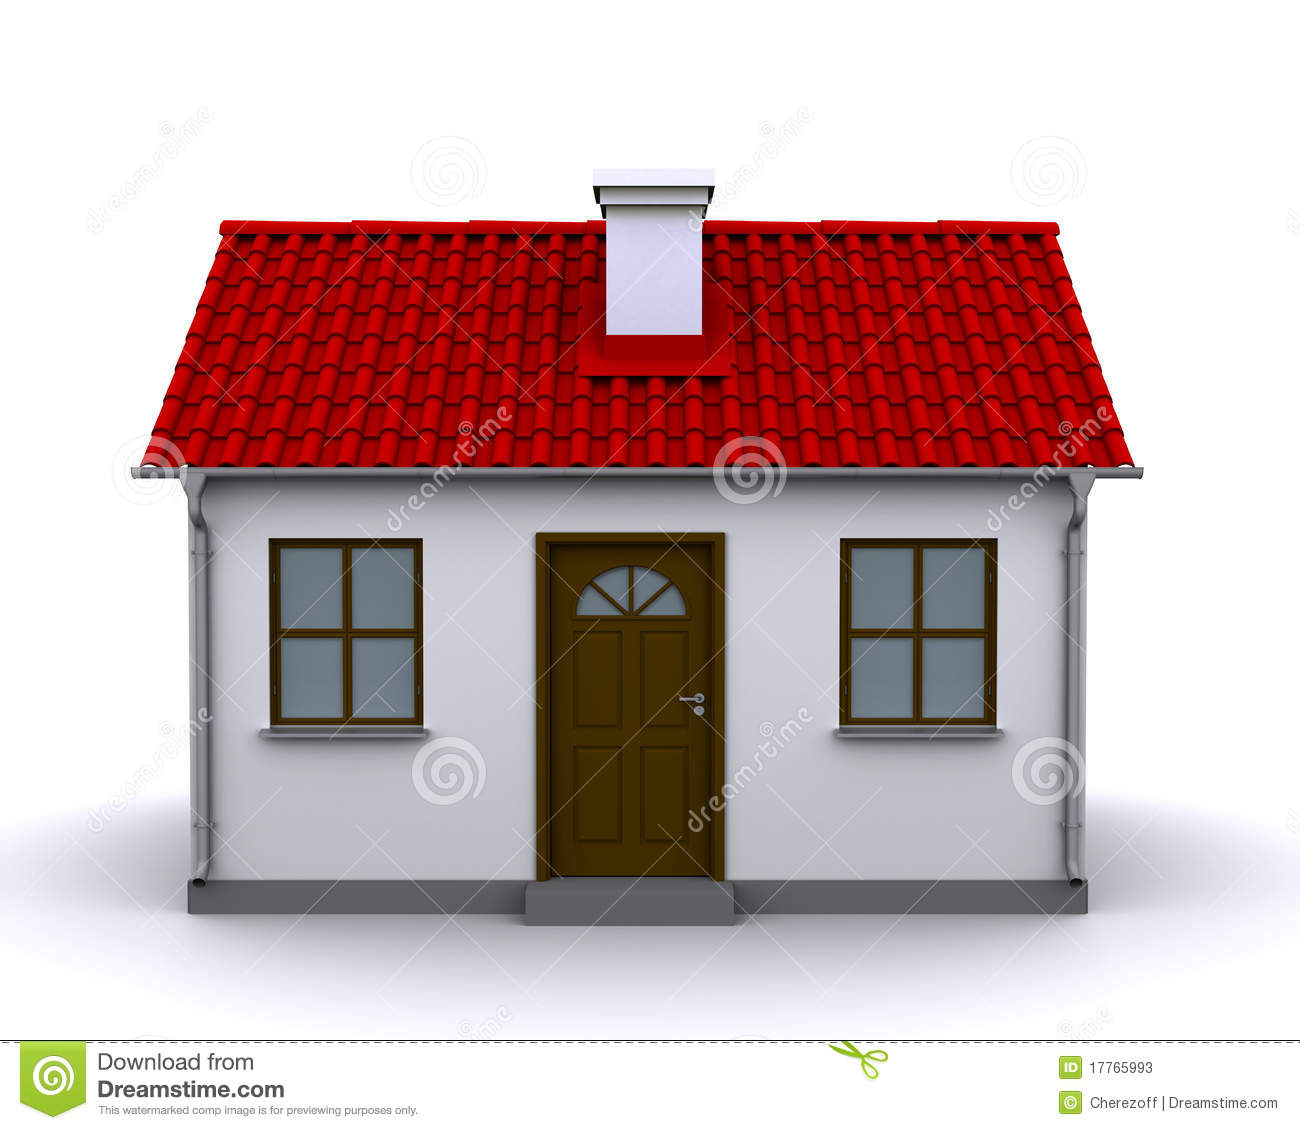 New small house model joy studio design gallery best for New model small house